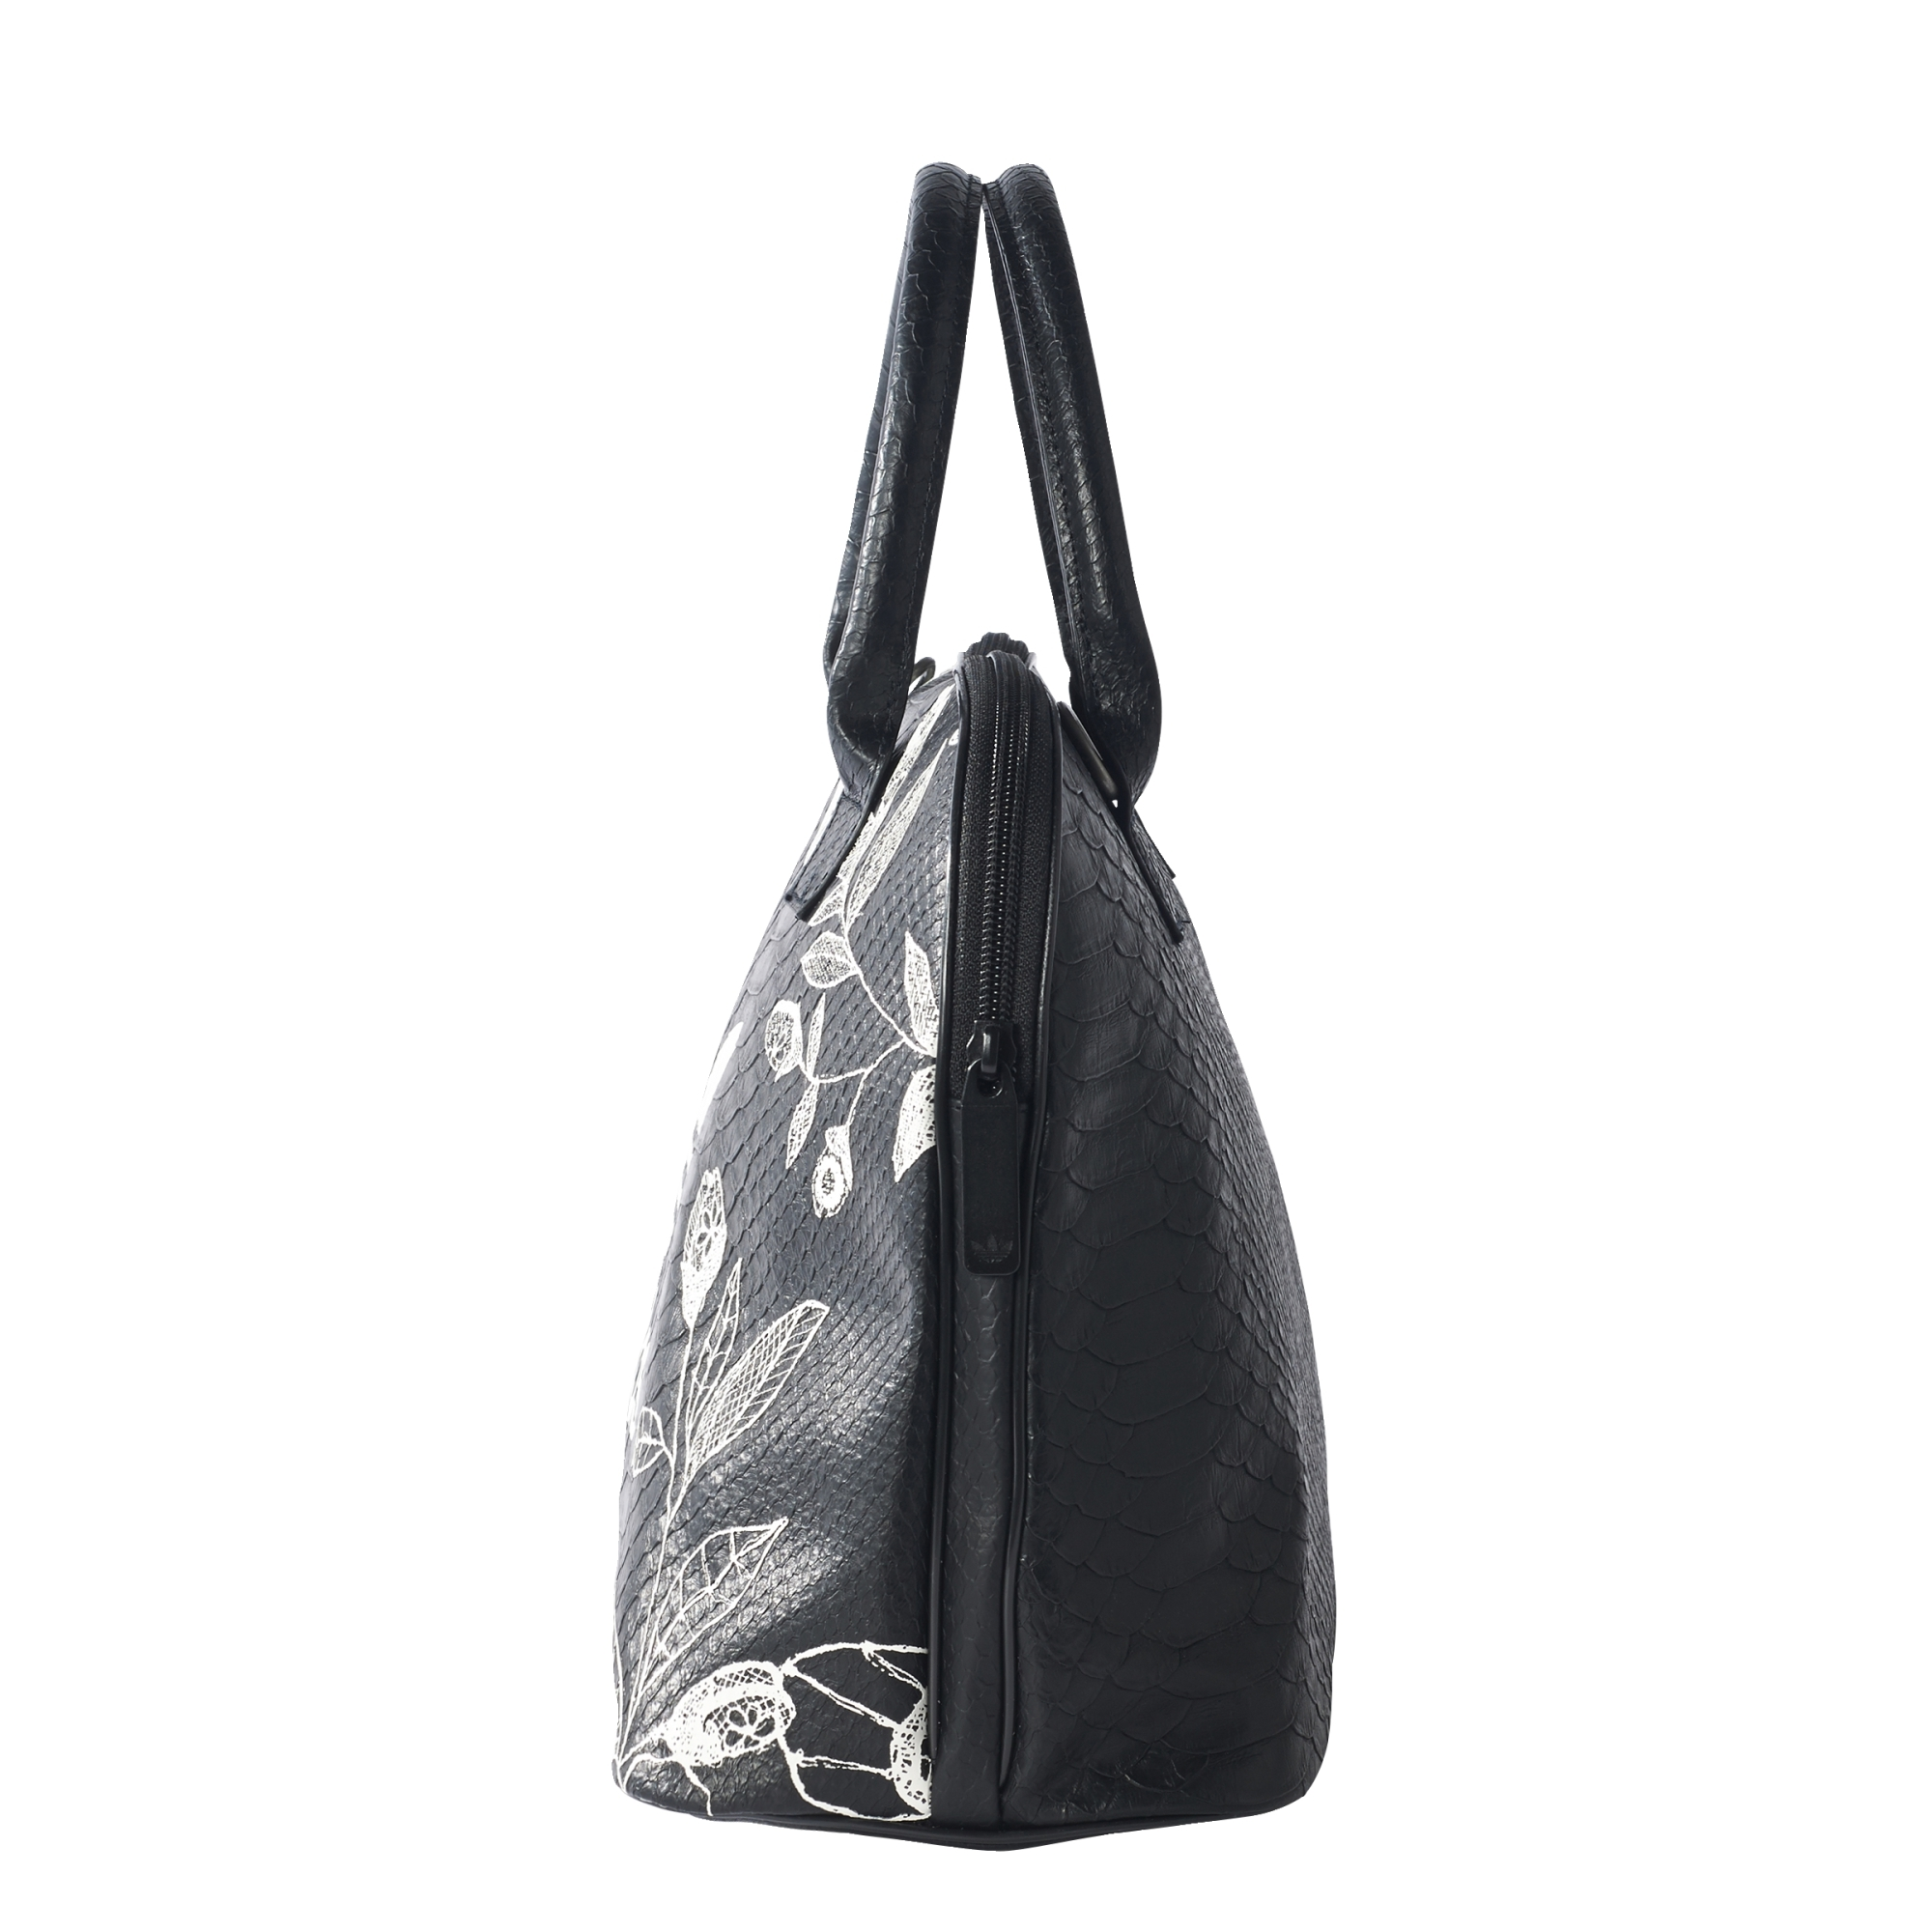 3347e33a51c0 Adidas Originals Giza Bowling Bag (black white)